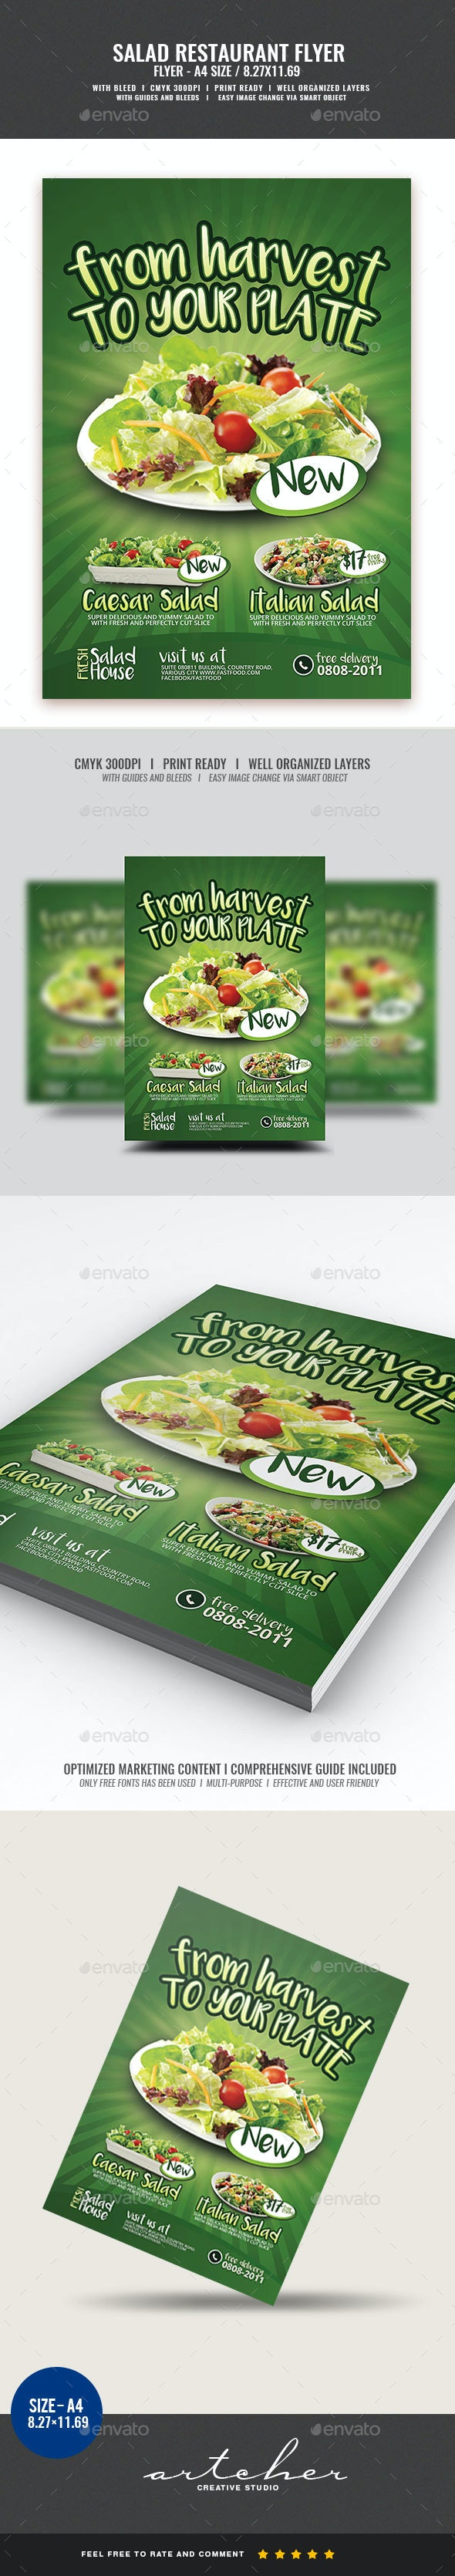 Salad Restaurant Flyer - Restaurant Flyers